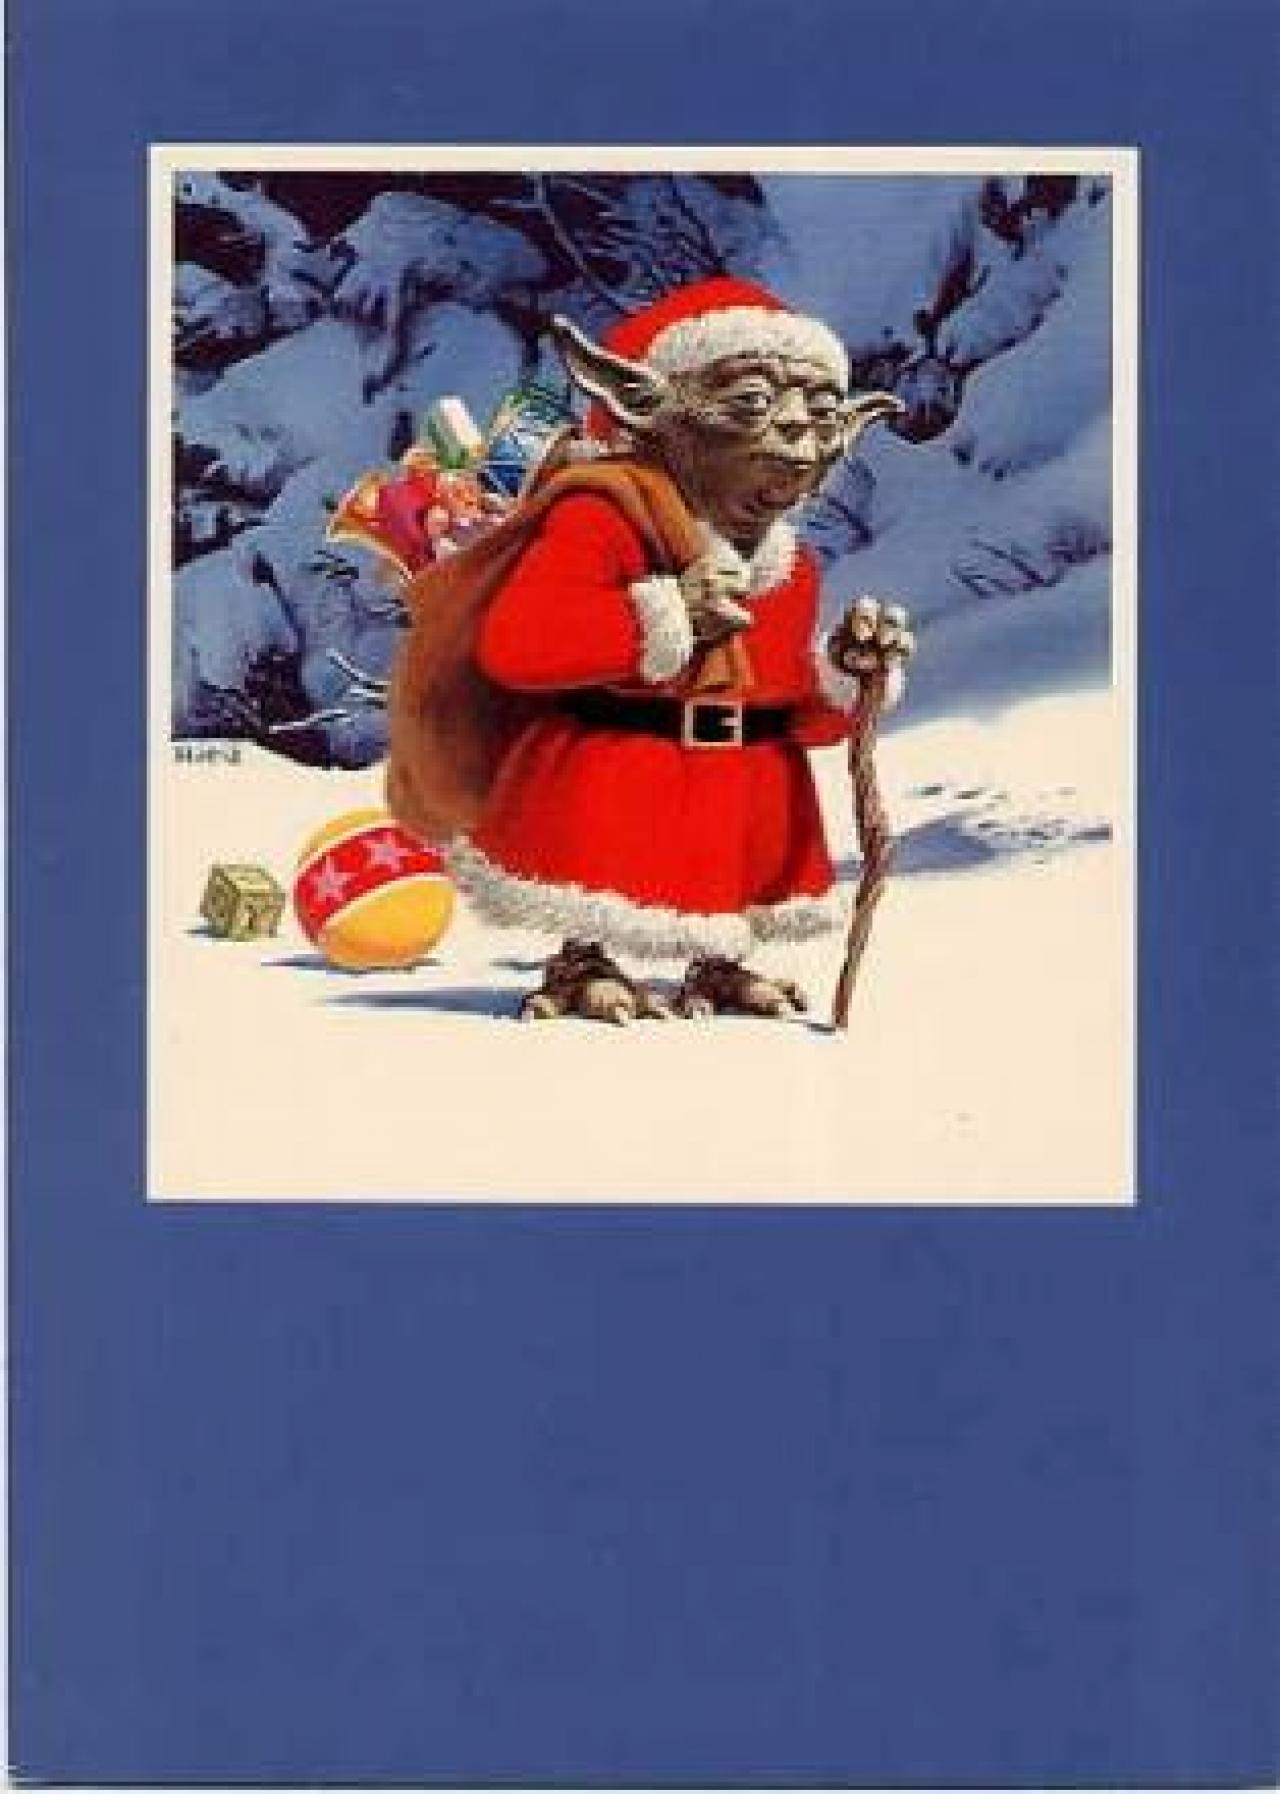 34 Amazing Star Wars Christmas Cards You Wish George Lucas